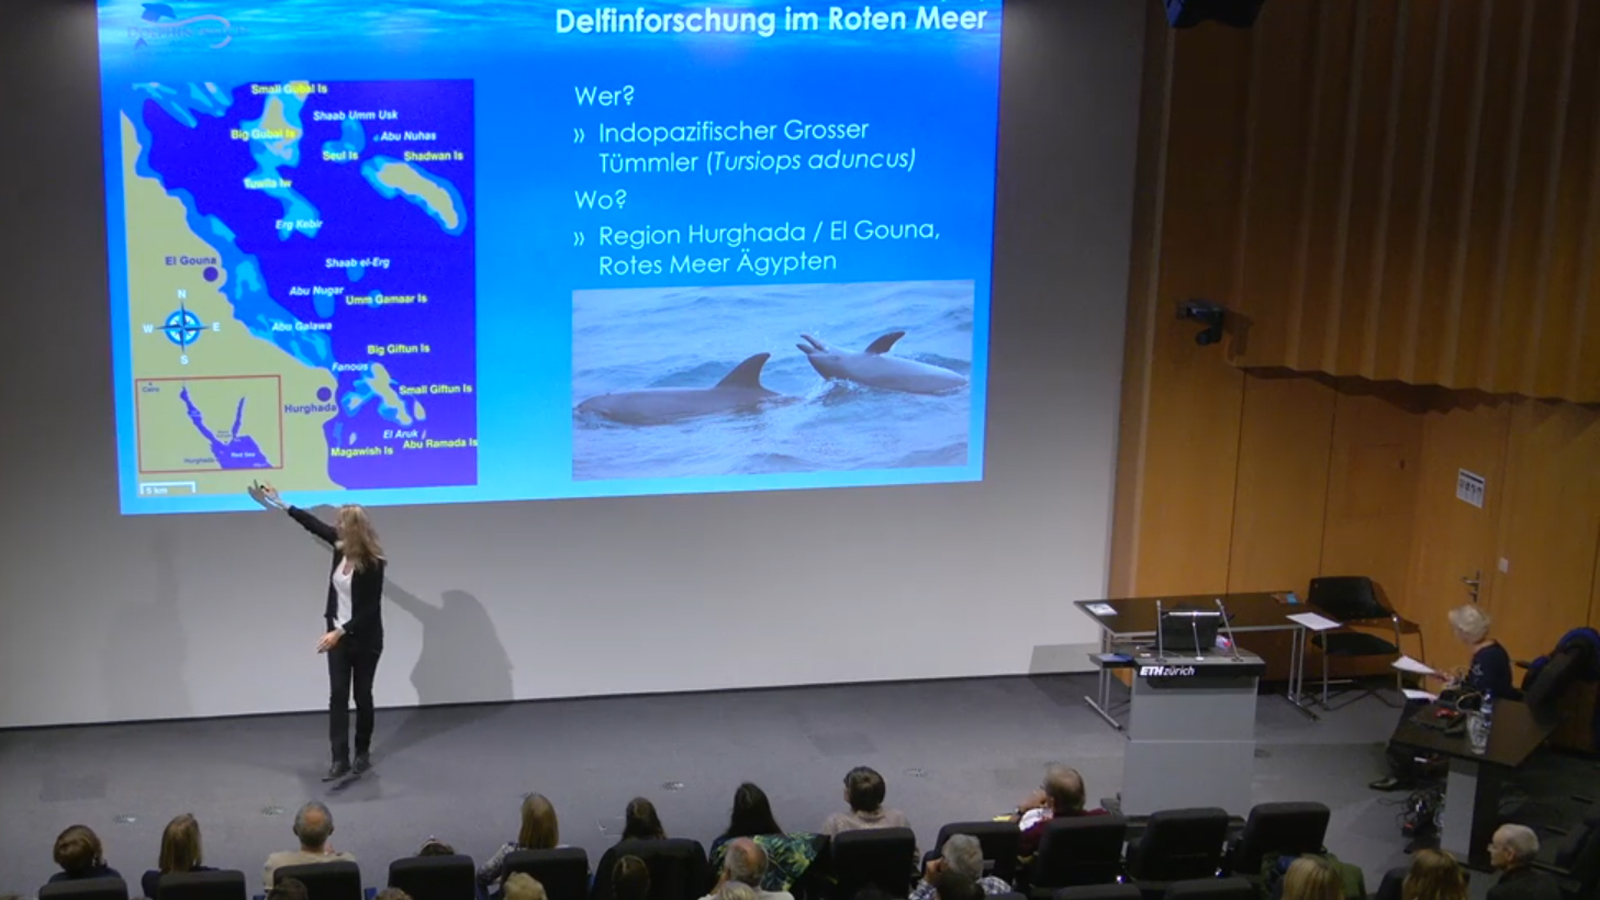 Lecture by Dolphin Watch Alliance at the Science City days at ETH Zurich